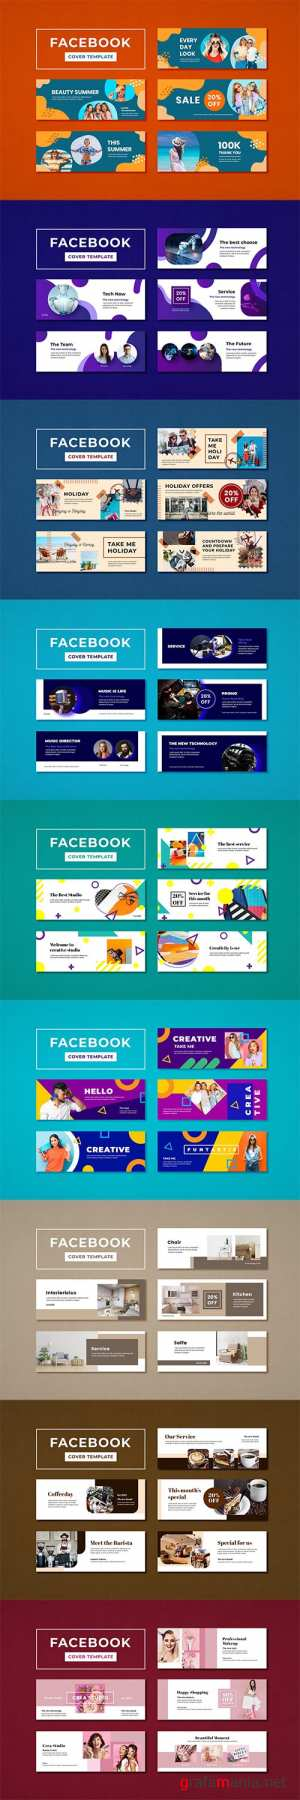 Facebook Covers Templates Pack PSD